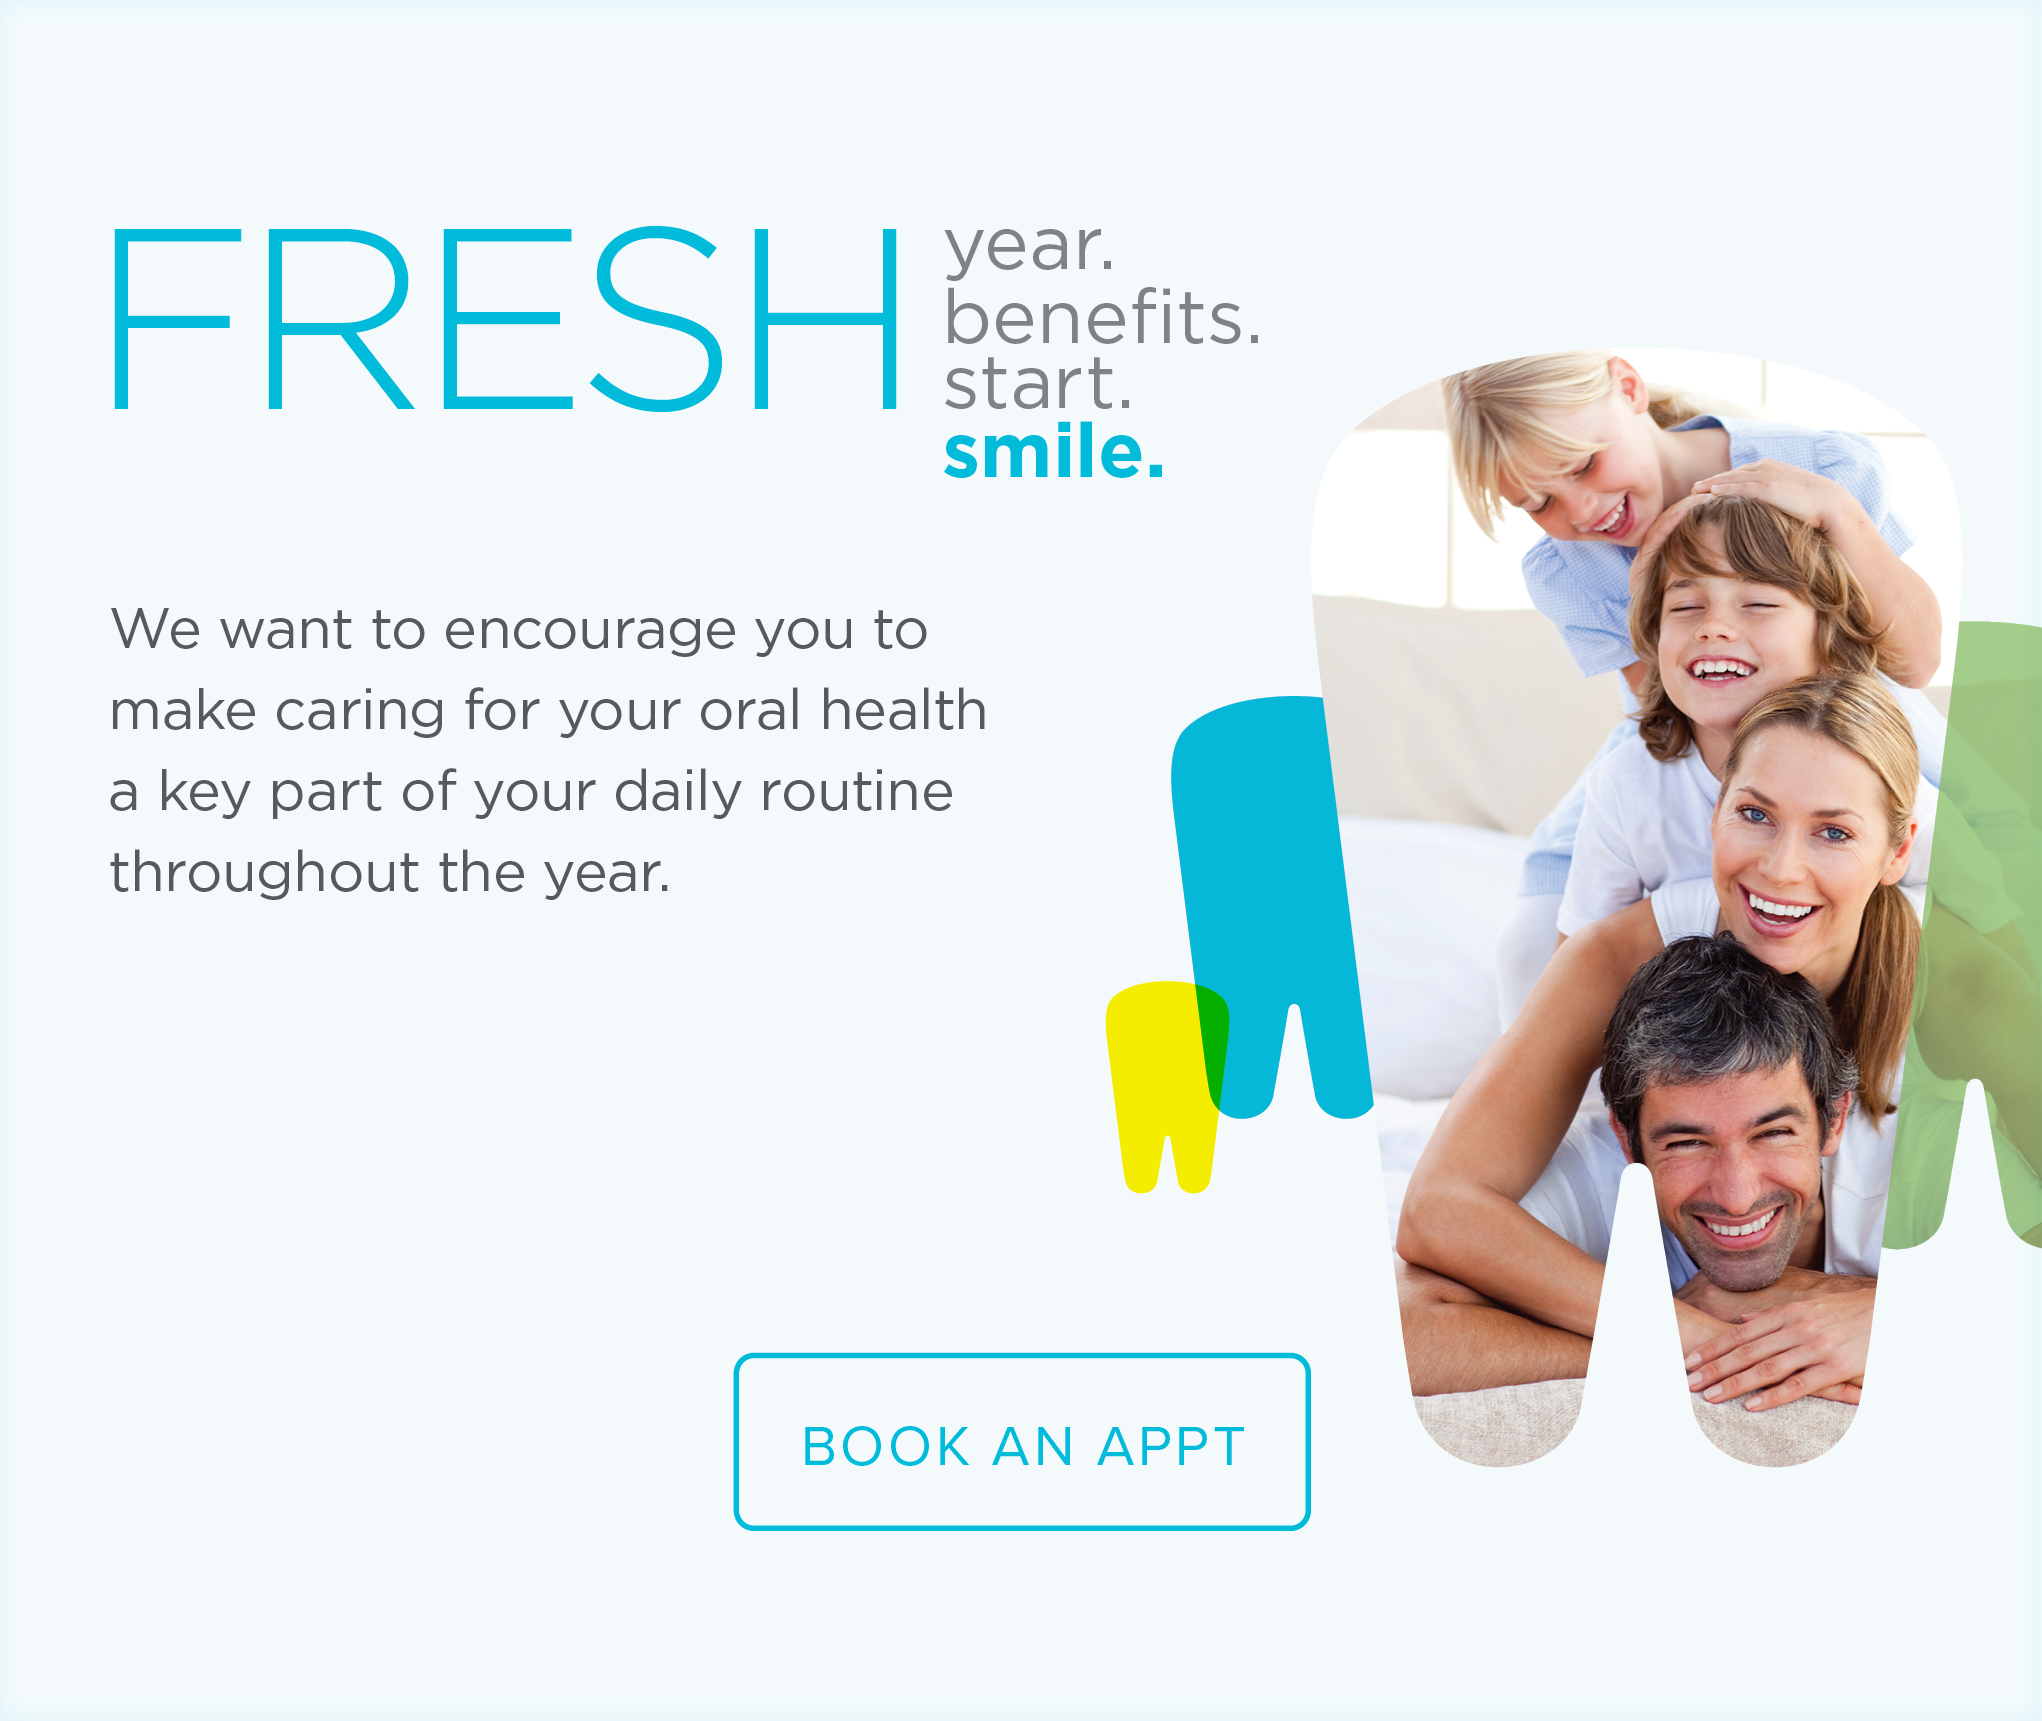 Overland Park Modern Dentistry - Make the Most of Your Benefits